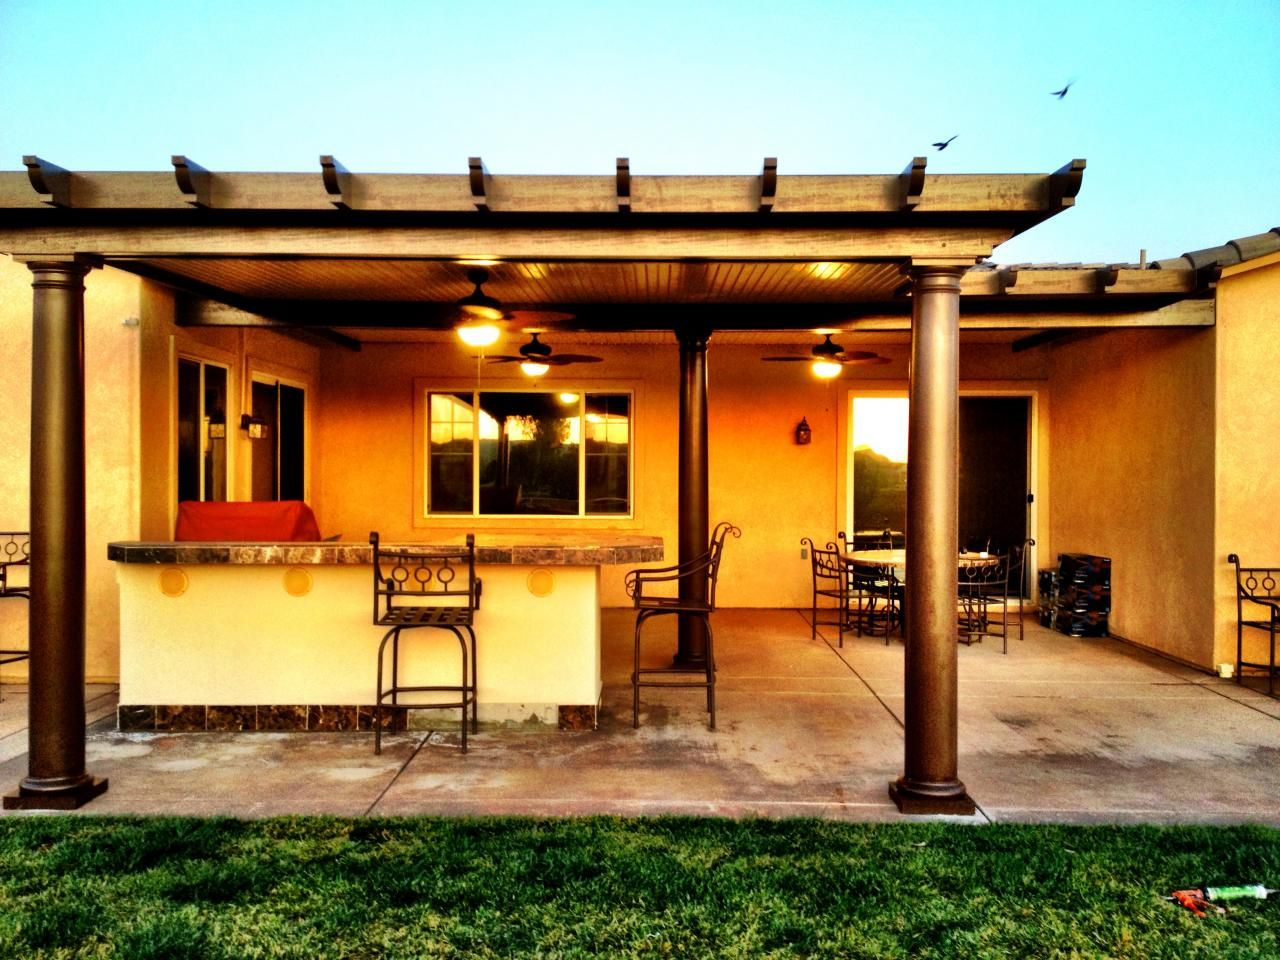 Southern California Patios - sOLID PATIO COVERS   Covered ... on Backyard Patio Extension Ideas id=93309